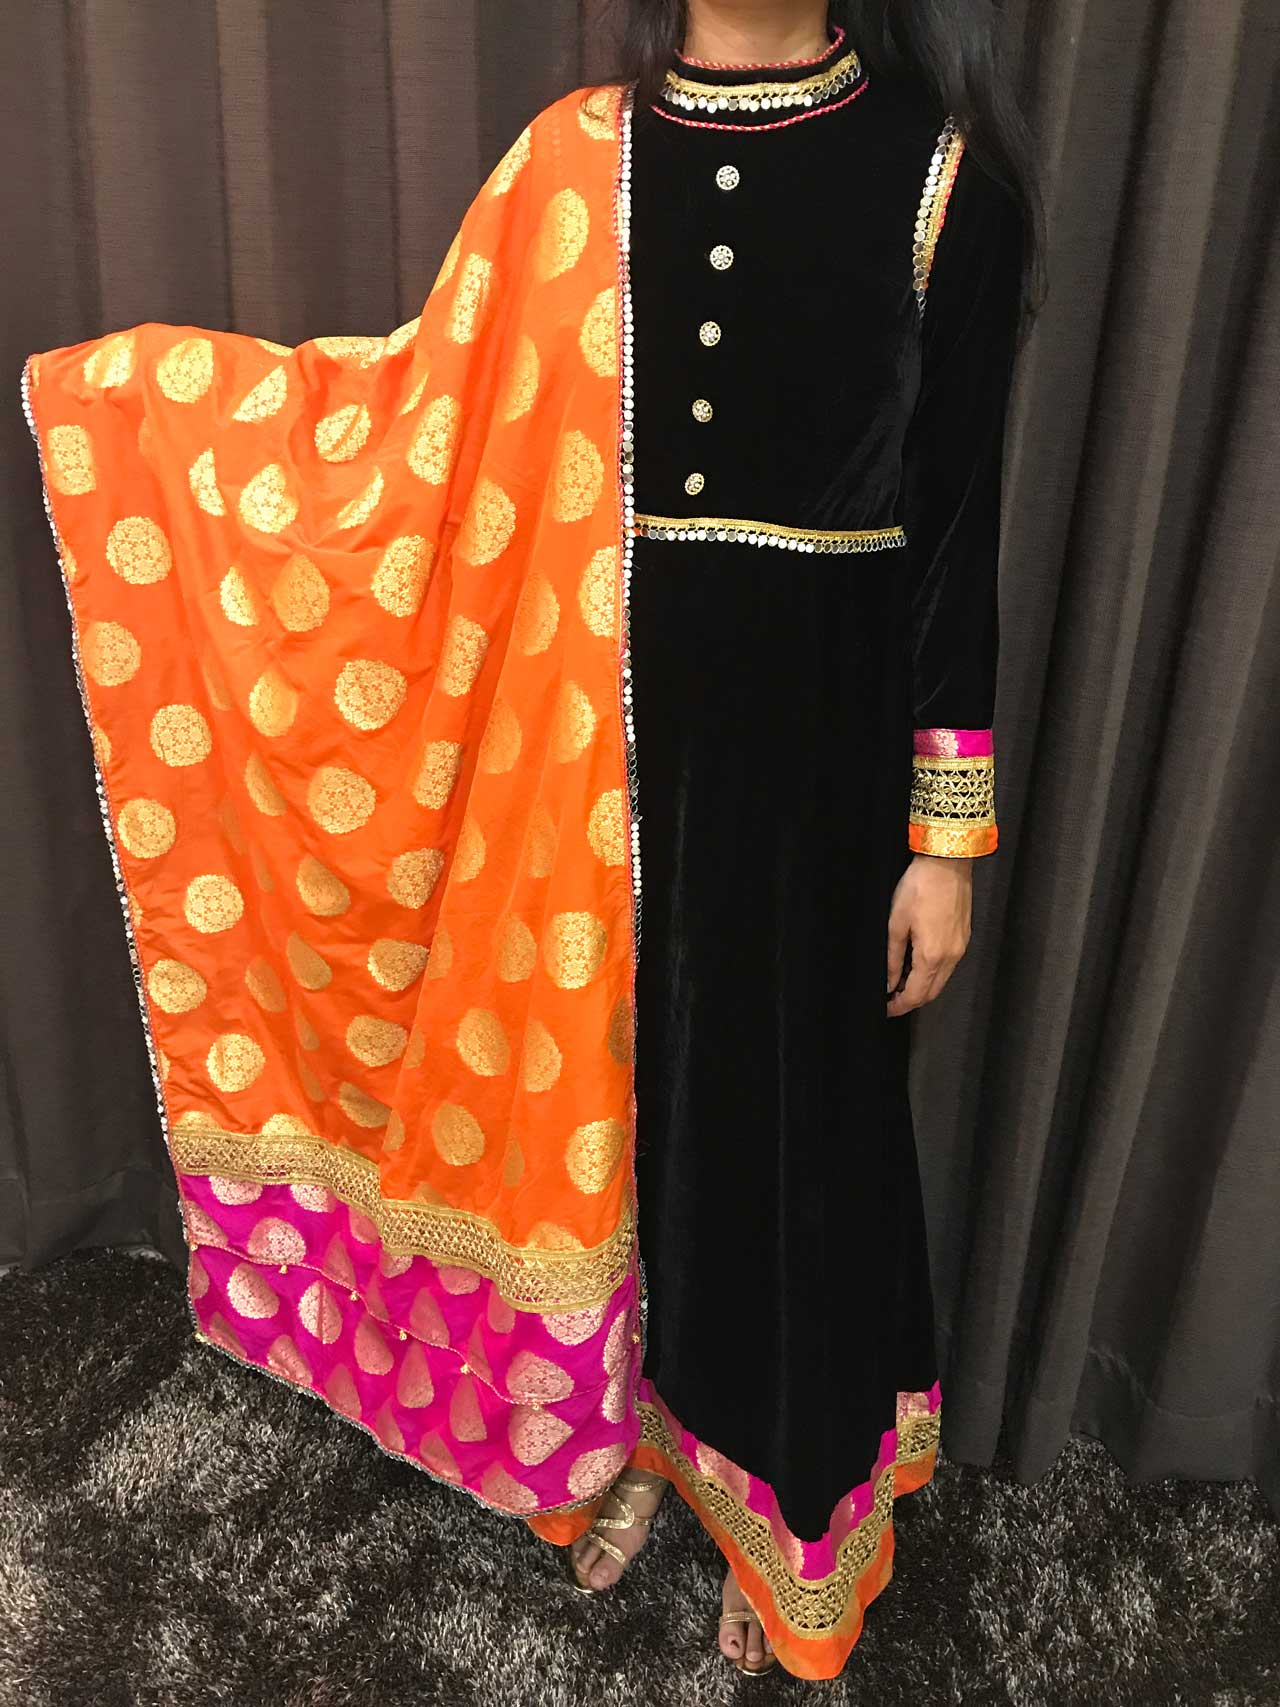 A Velvet Dress in the Aristrocatic Black with a Classy Combo of Orange and Pink Banarasee Dupatta in Pure Silk